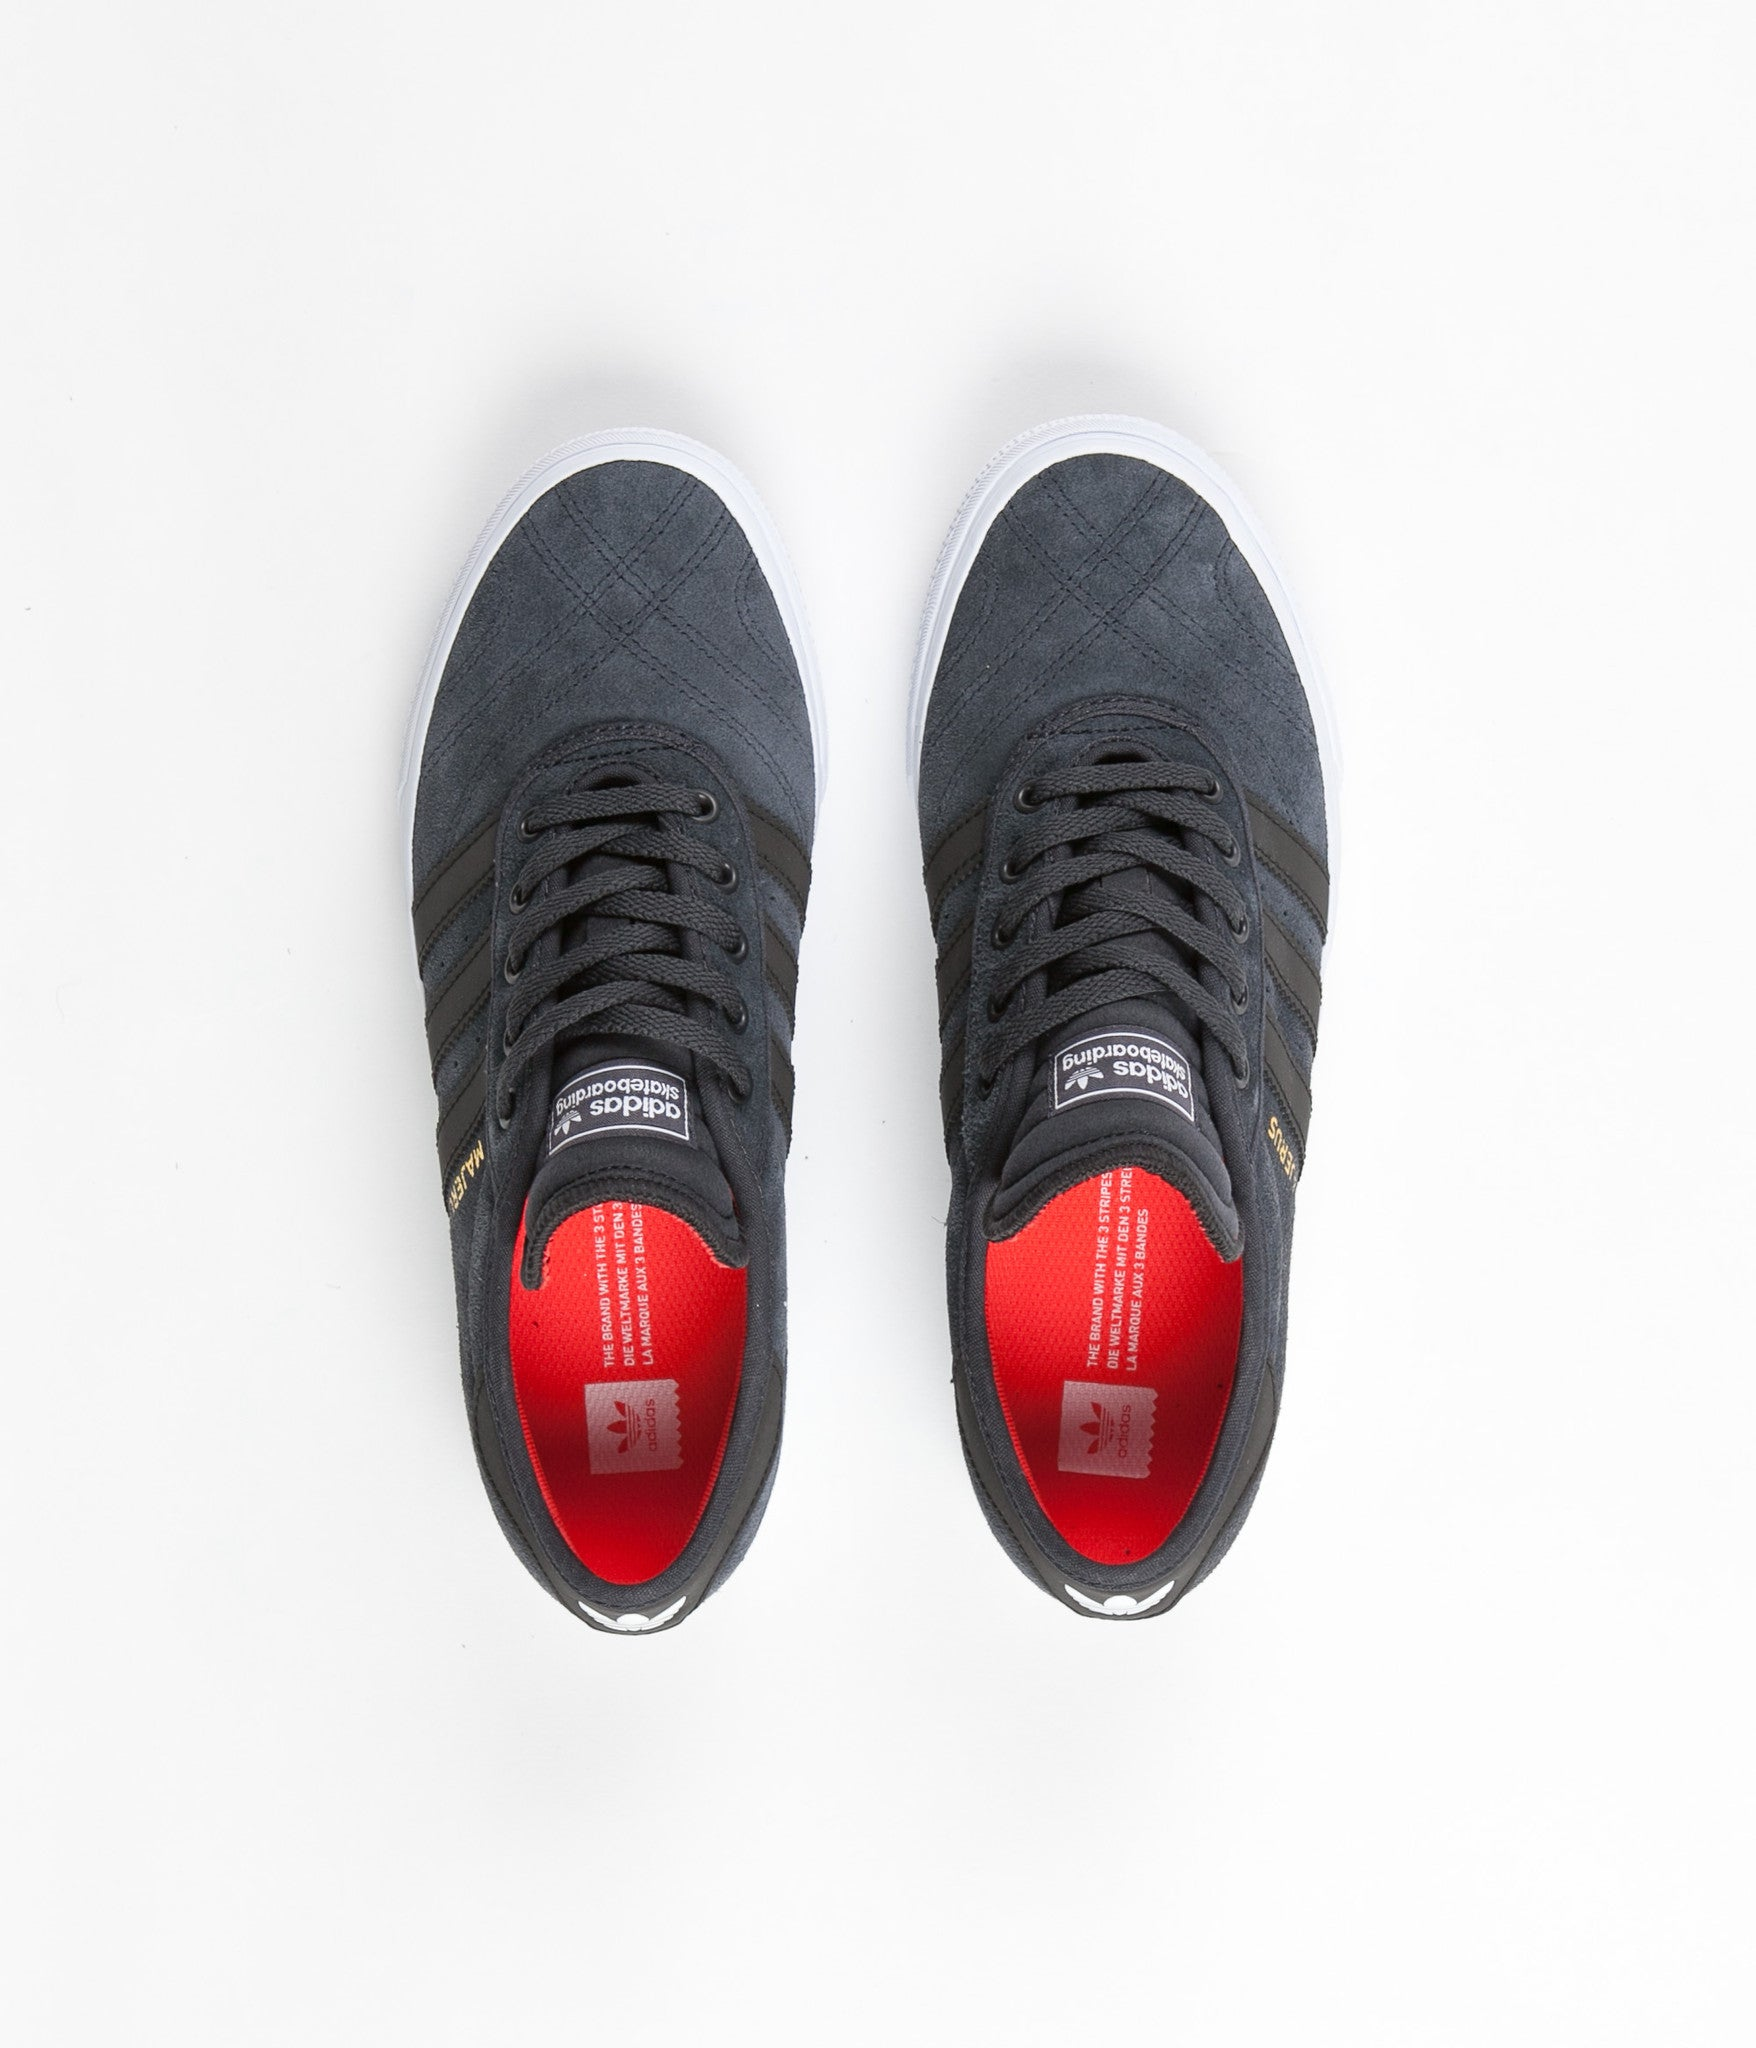 low priced e386d fc8ad Adidas Adi-Ease Premiere Adv Shoes - Customized  Core Black